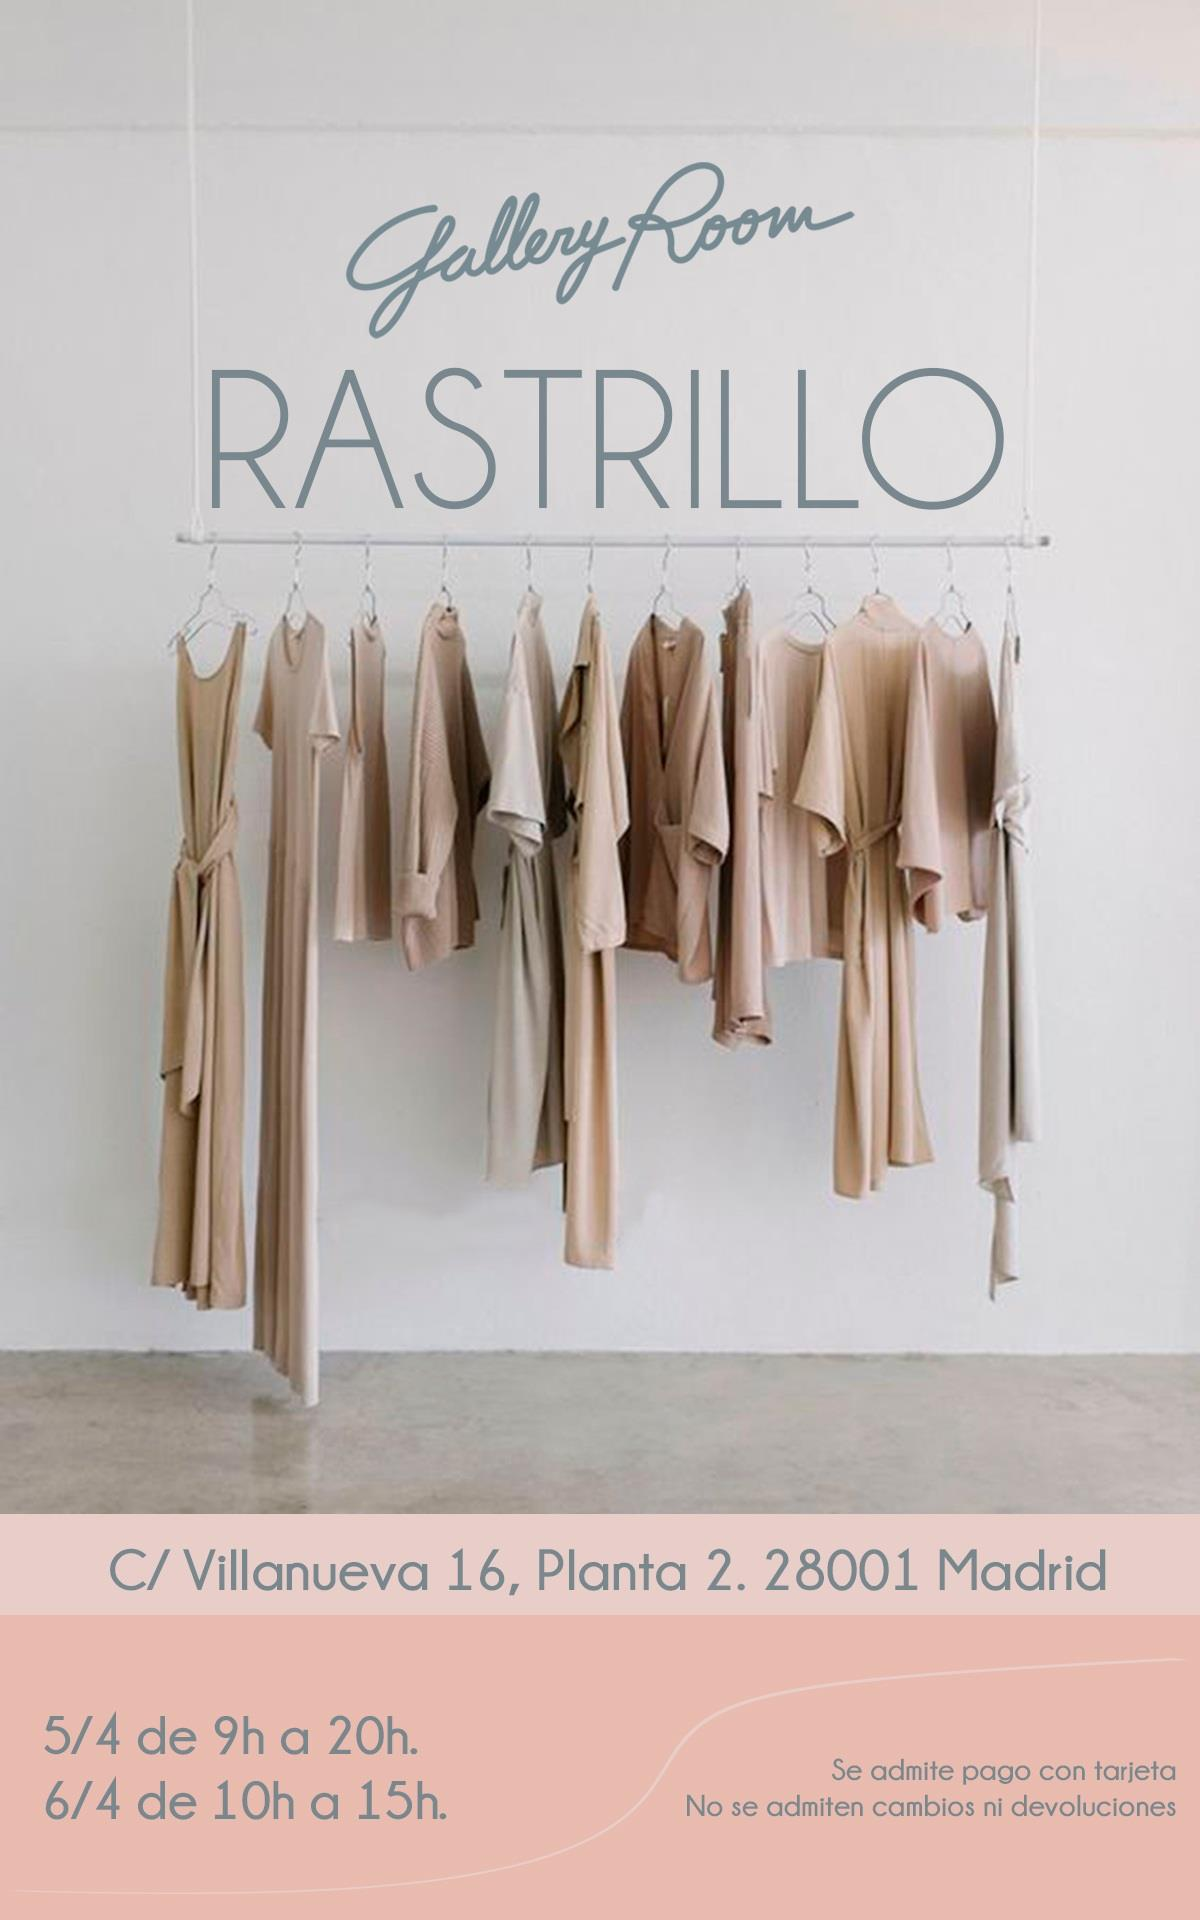 RASTRILLO GALLERY ROOM (MADRID)